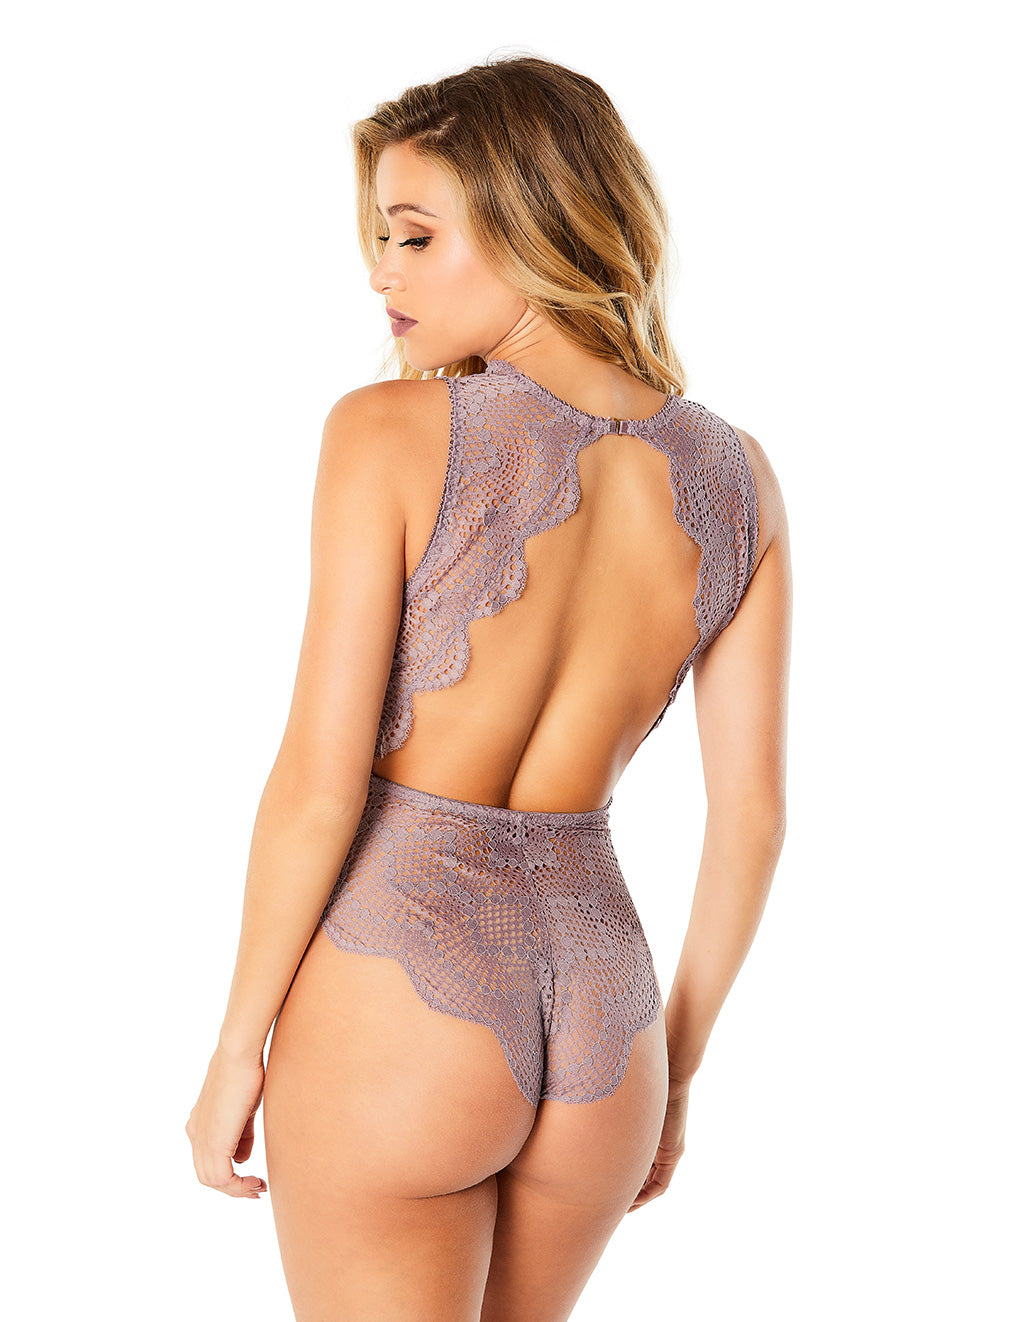 Oh La La Cheri Striped Lace Plunge Teddy Purple Back